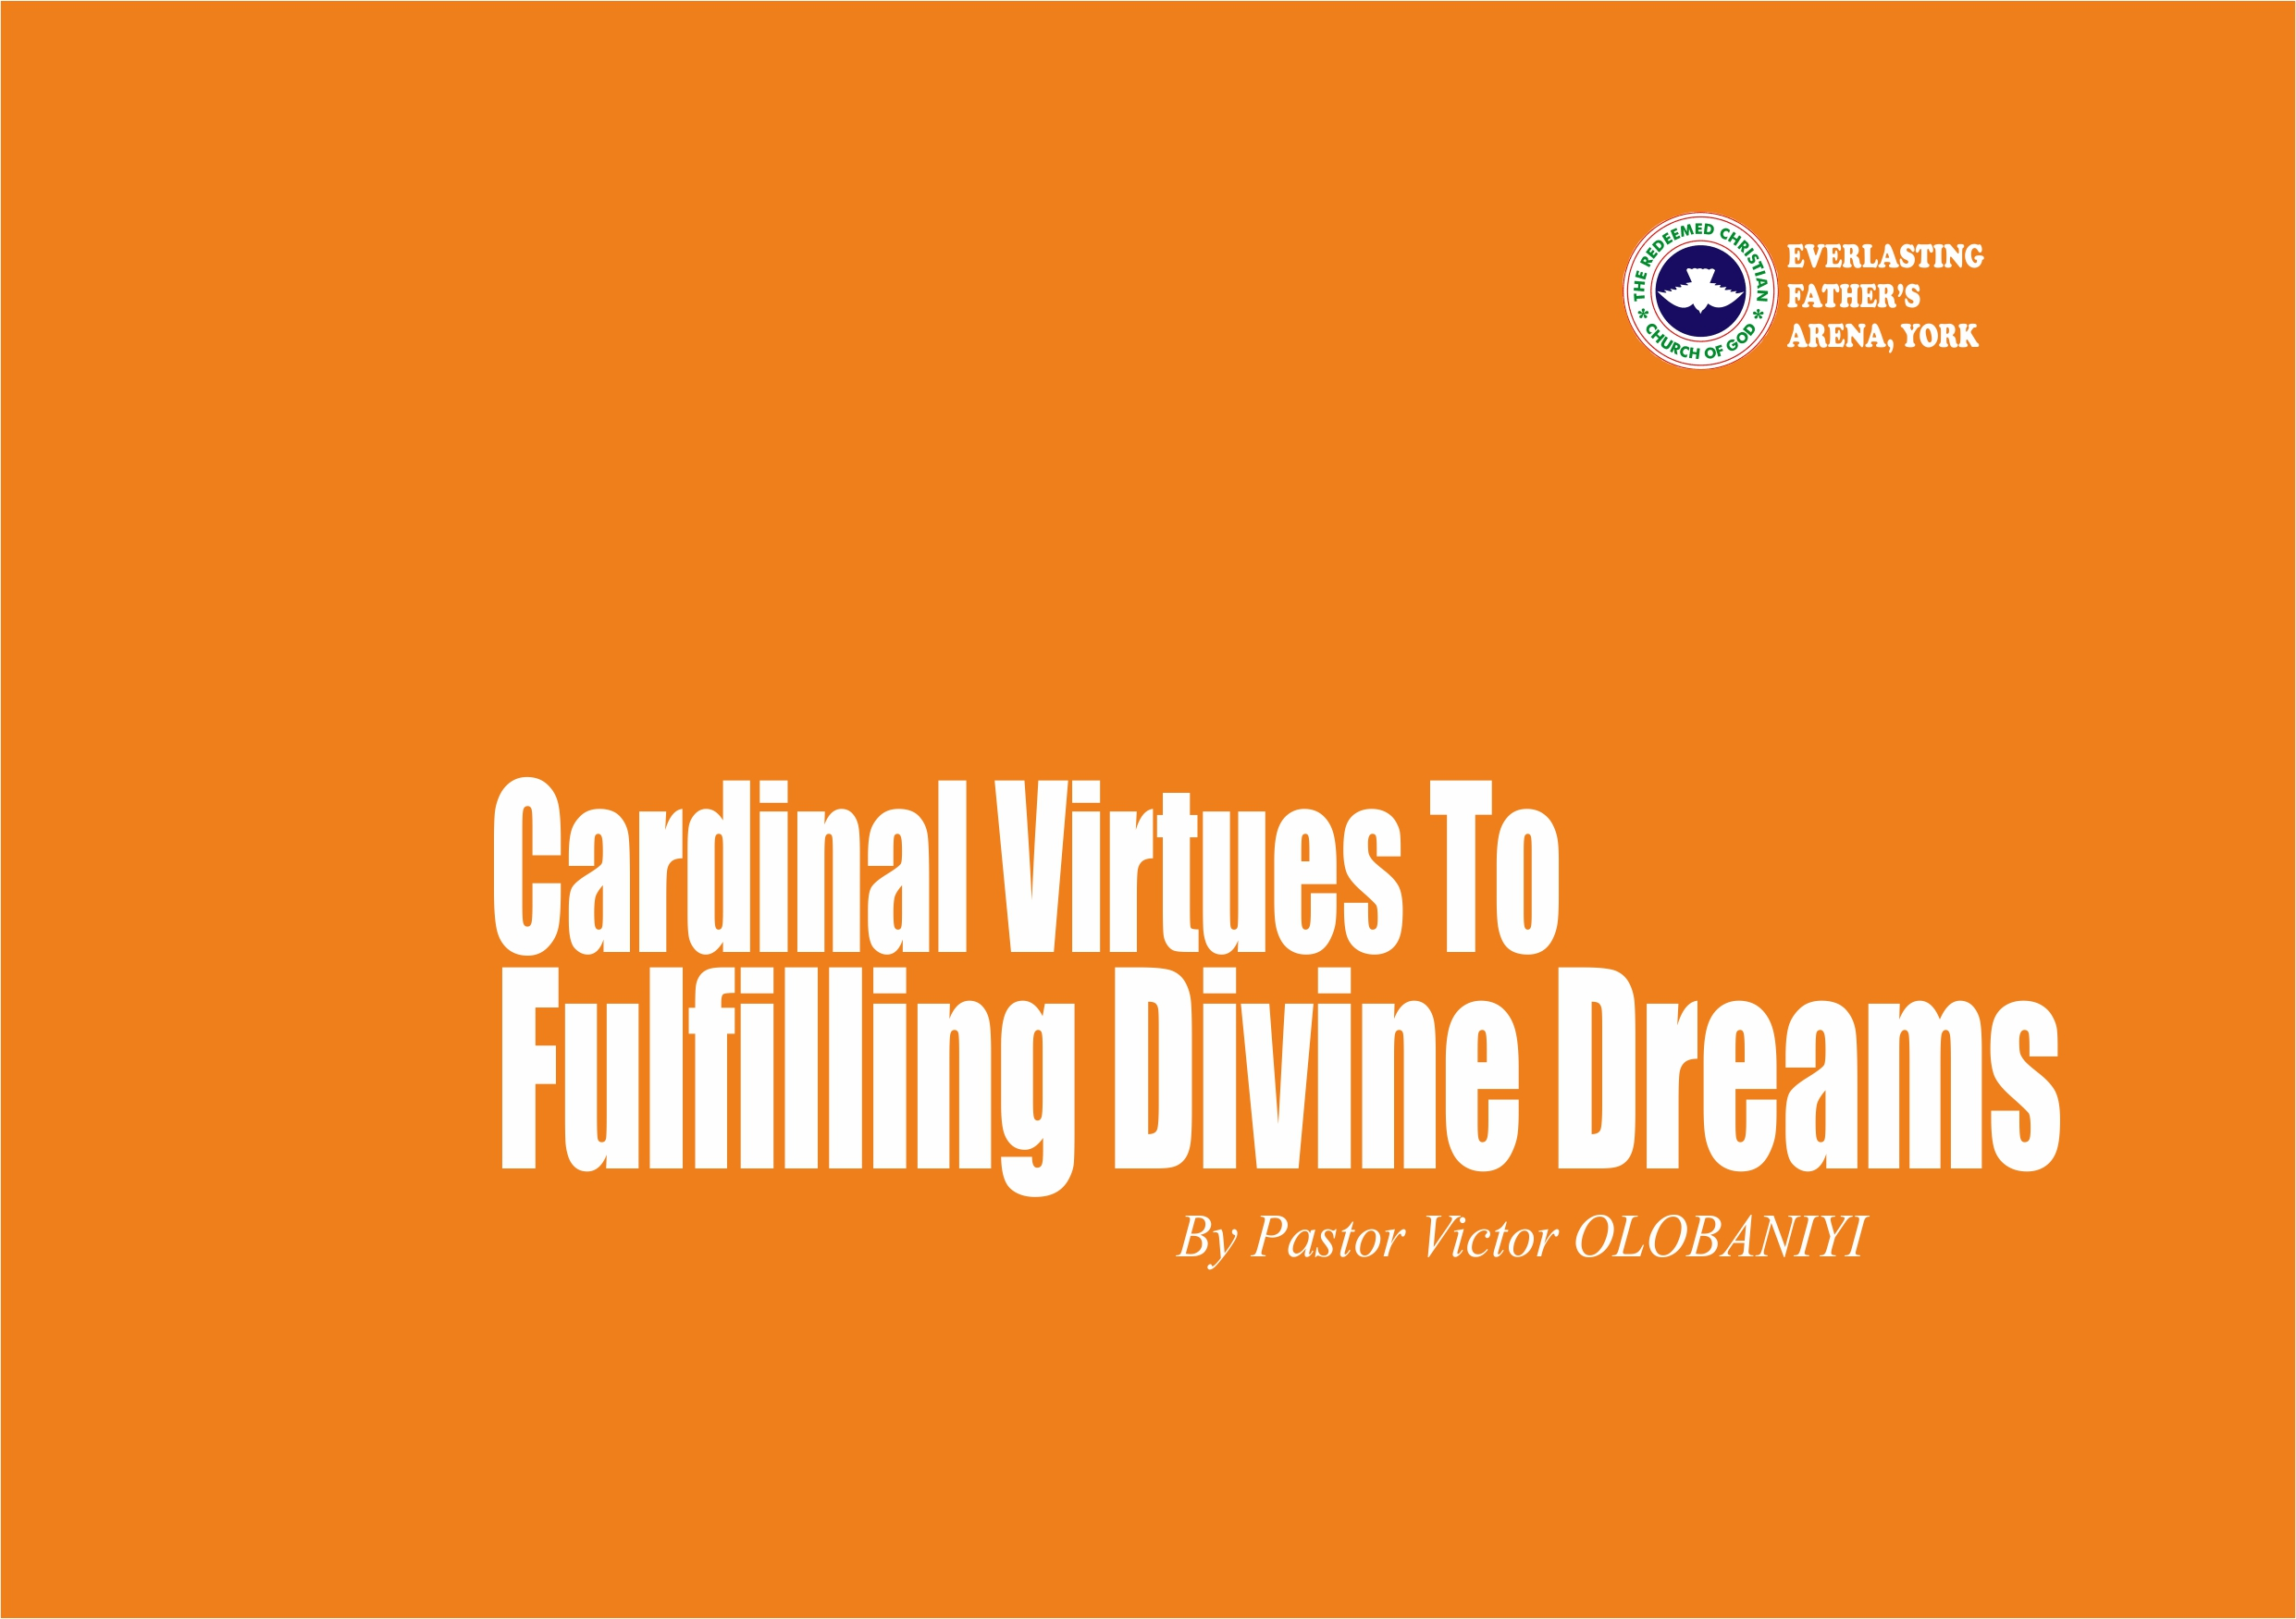 Cardinal Virtues To Fulfilling Divine Dreams (1), by Pastor Victor Olobaniyi